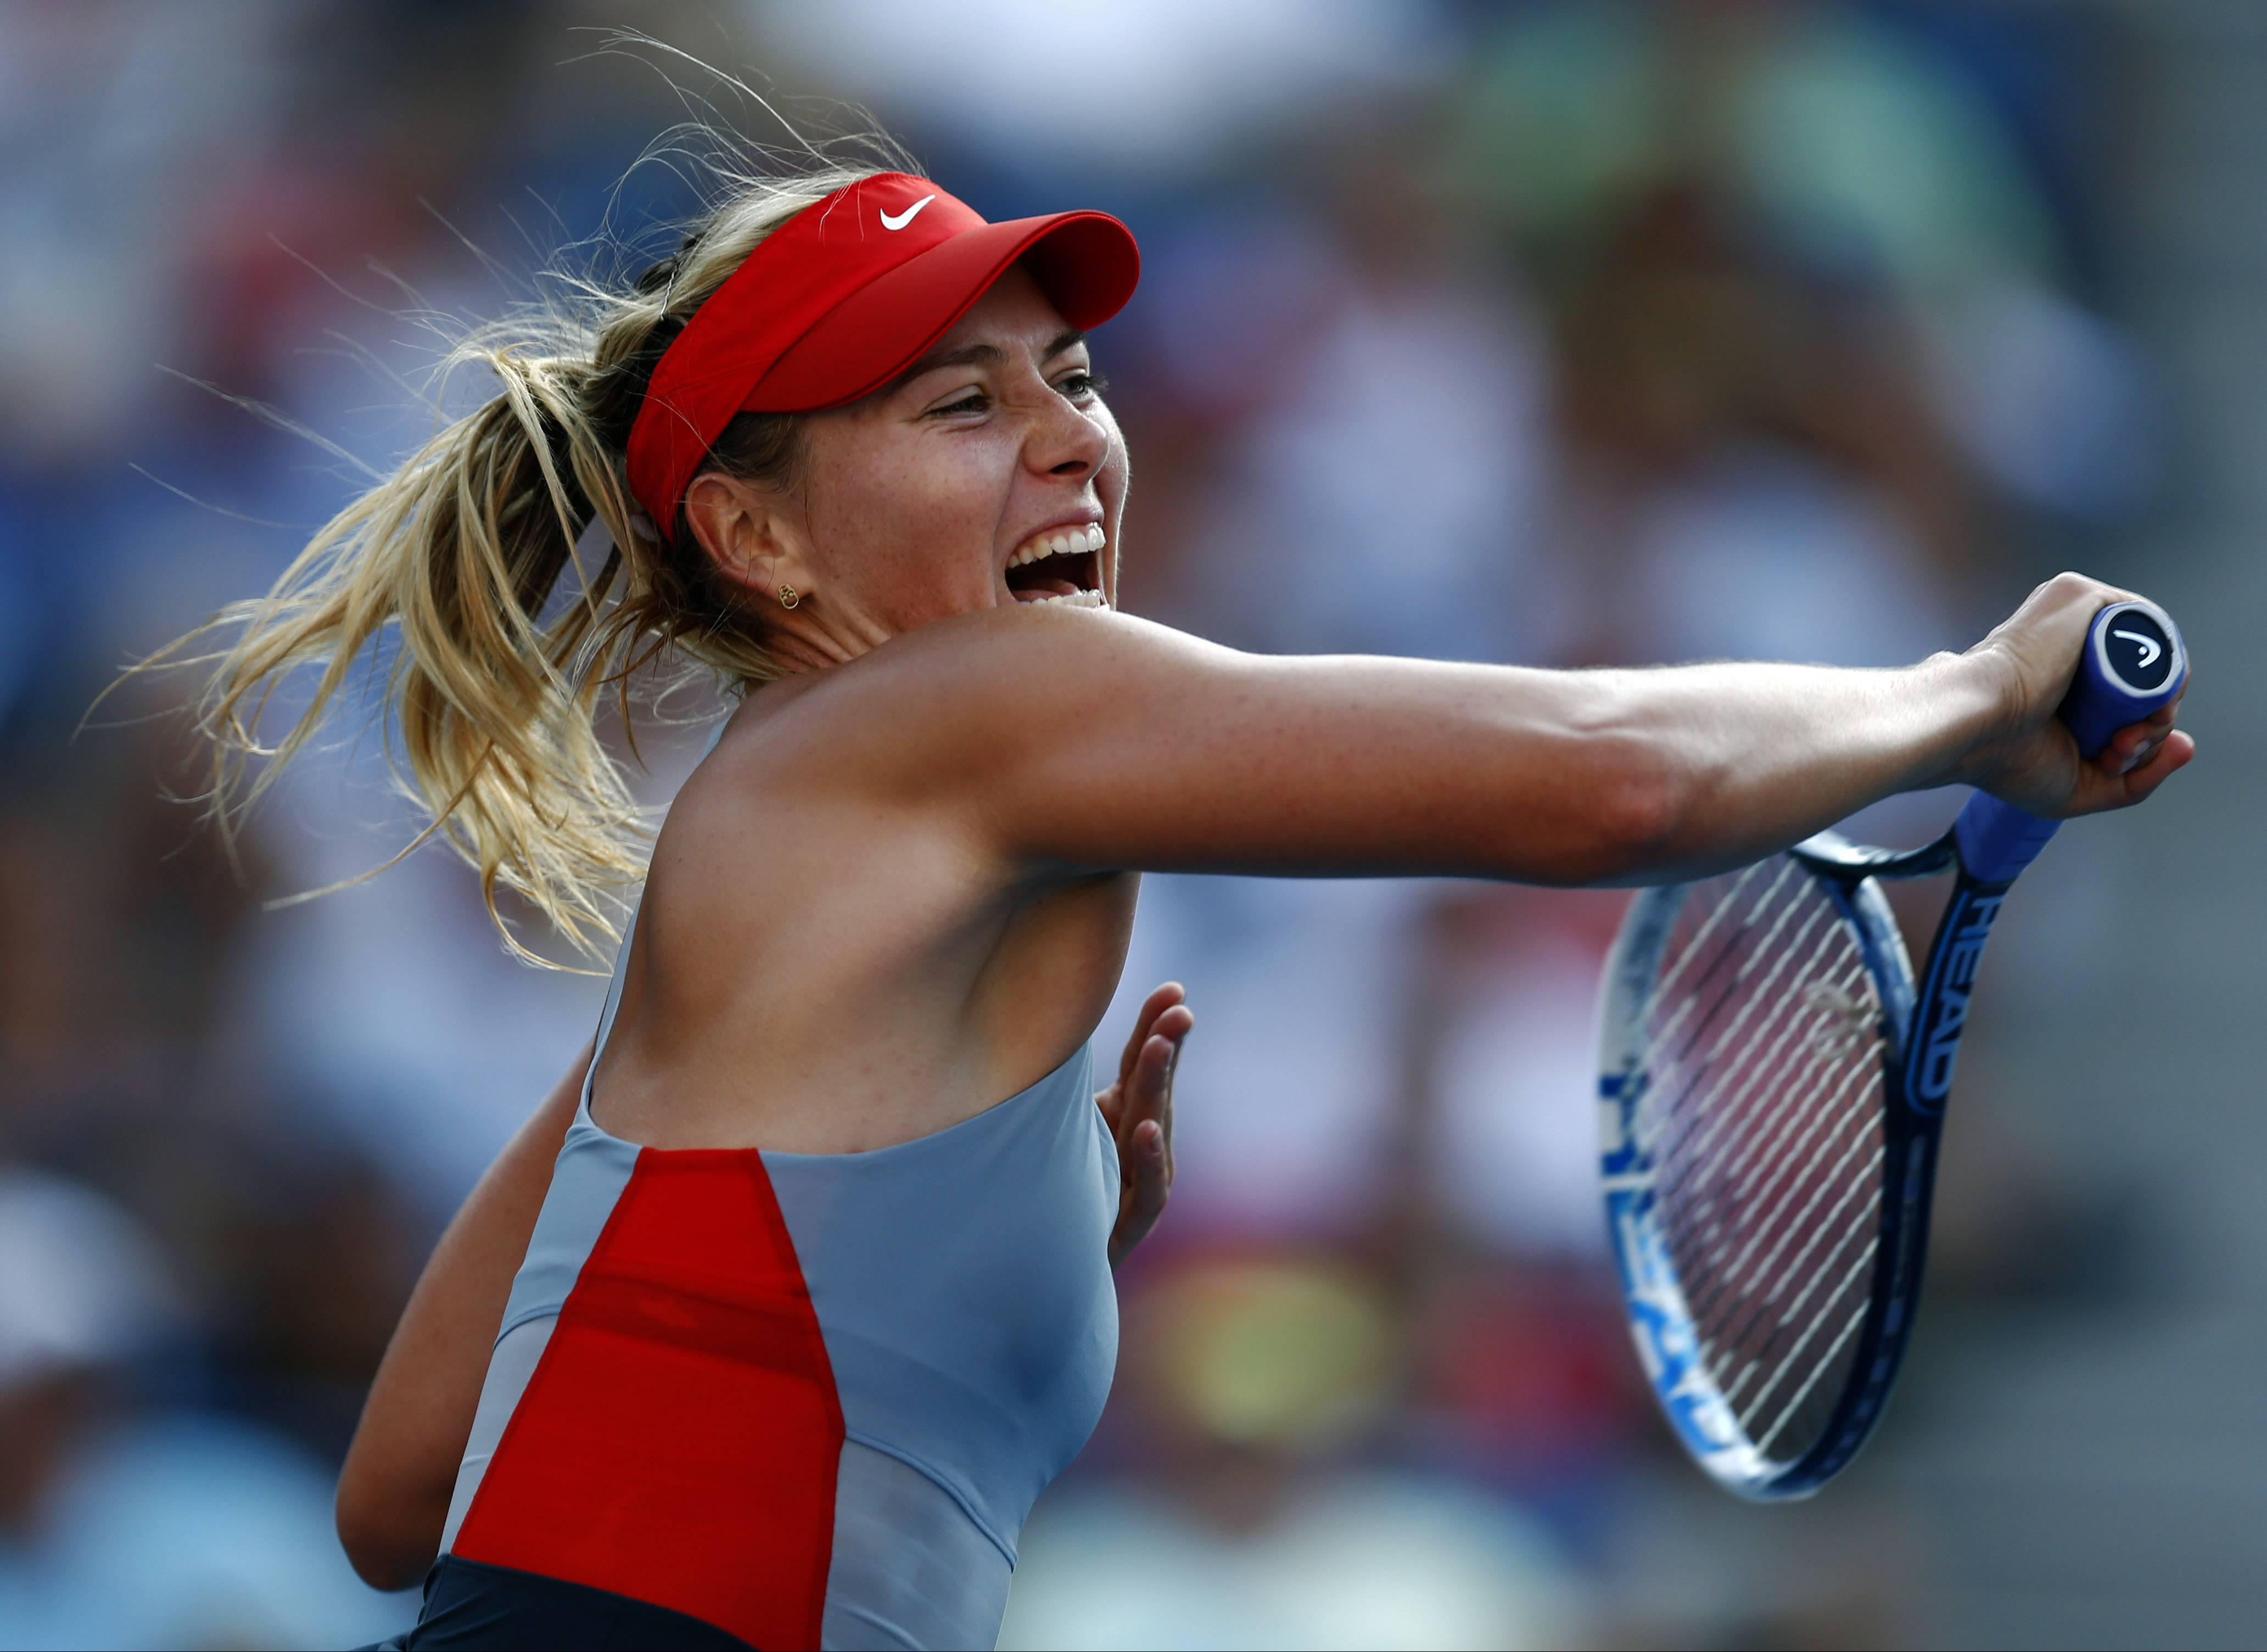 Maria Sharapova, of Russia, follows through on a shot against Alexandra Dulgheru, of Romania, during the second round of the 2014 U.S. Open tennis tournament, Wednesday, Aug. 27, 2014, in New York.